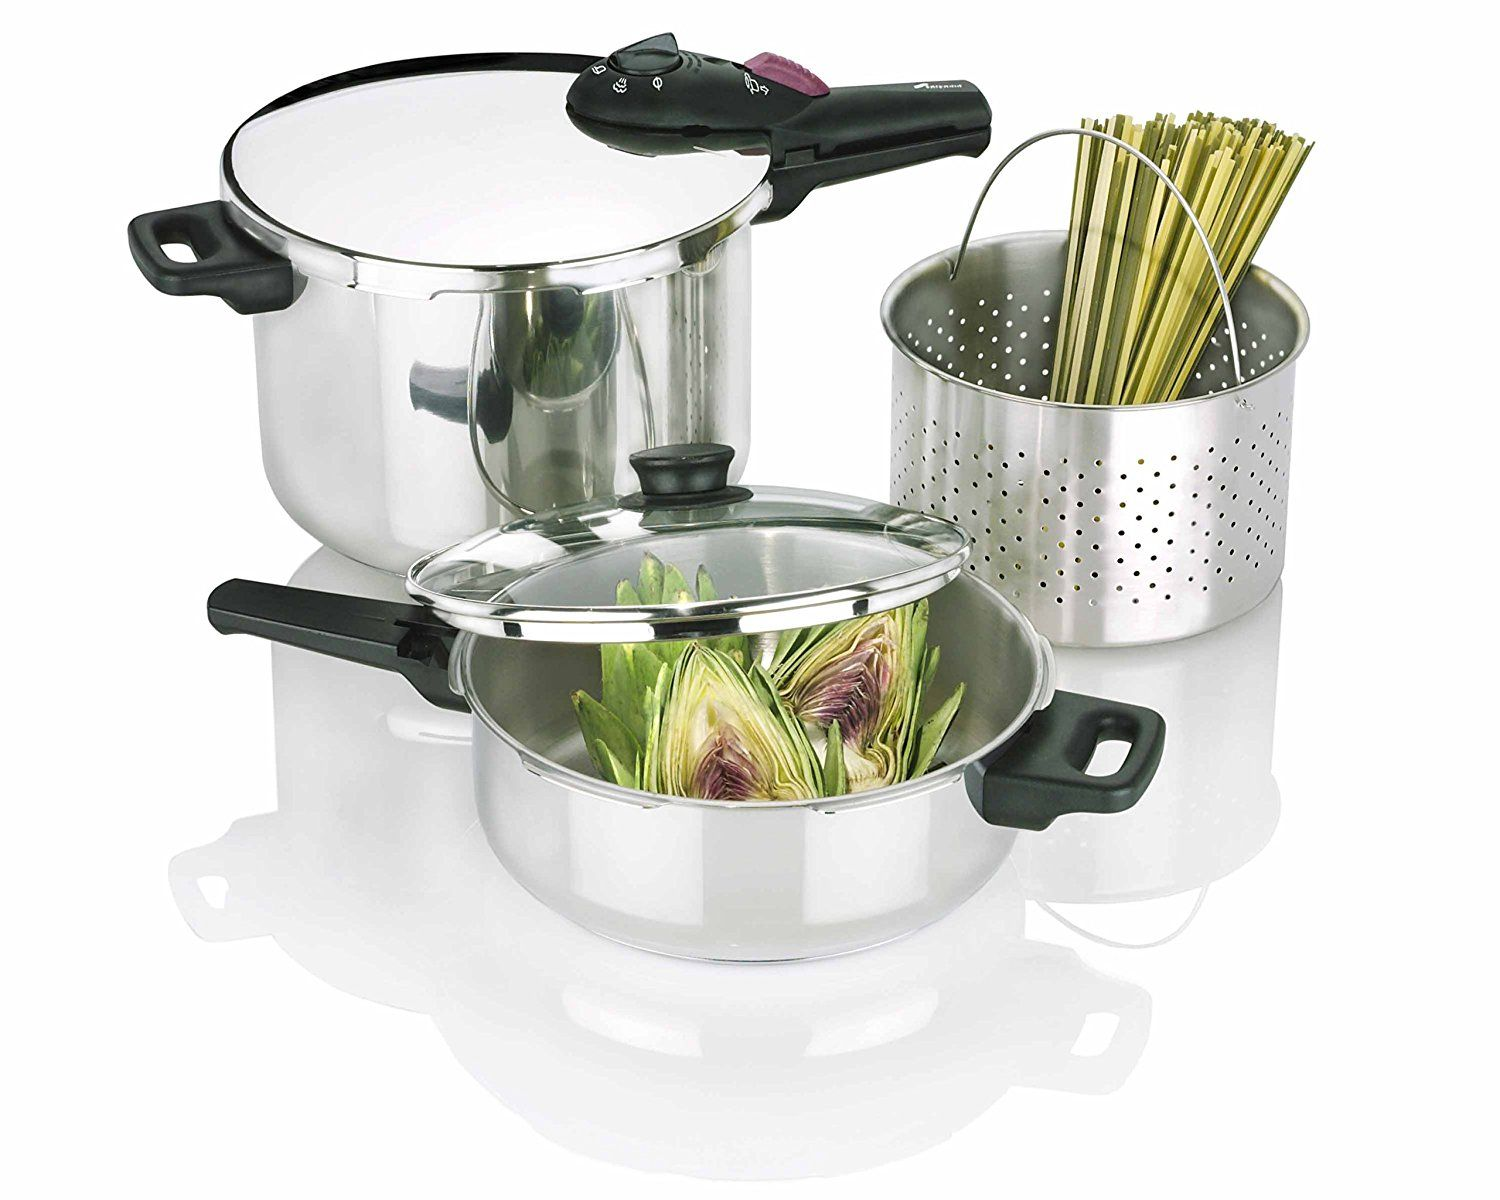 Fagor by splendid piece pressure cooker set for more